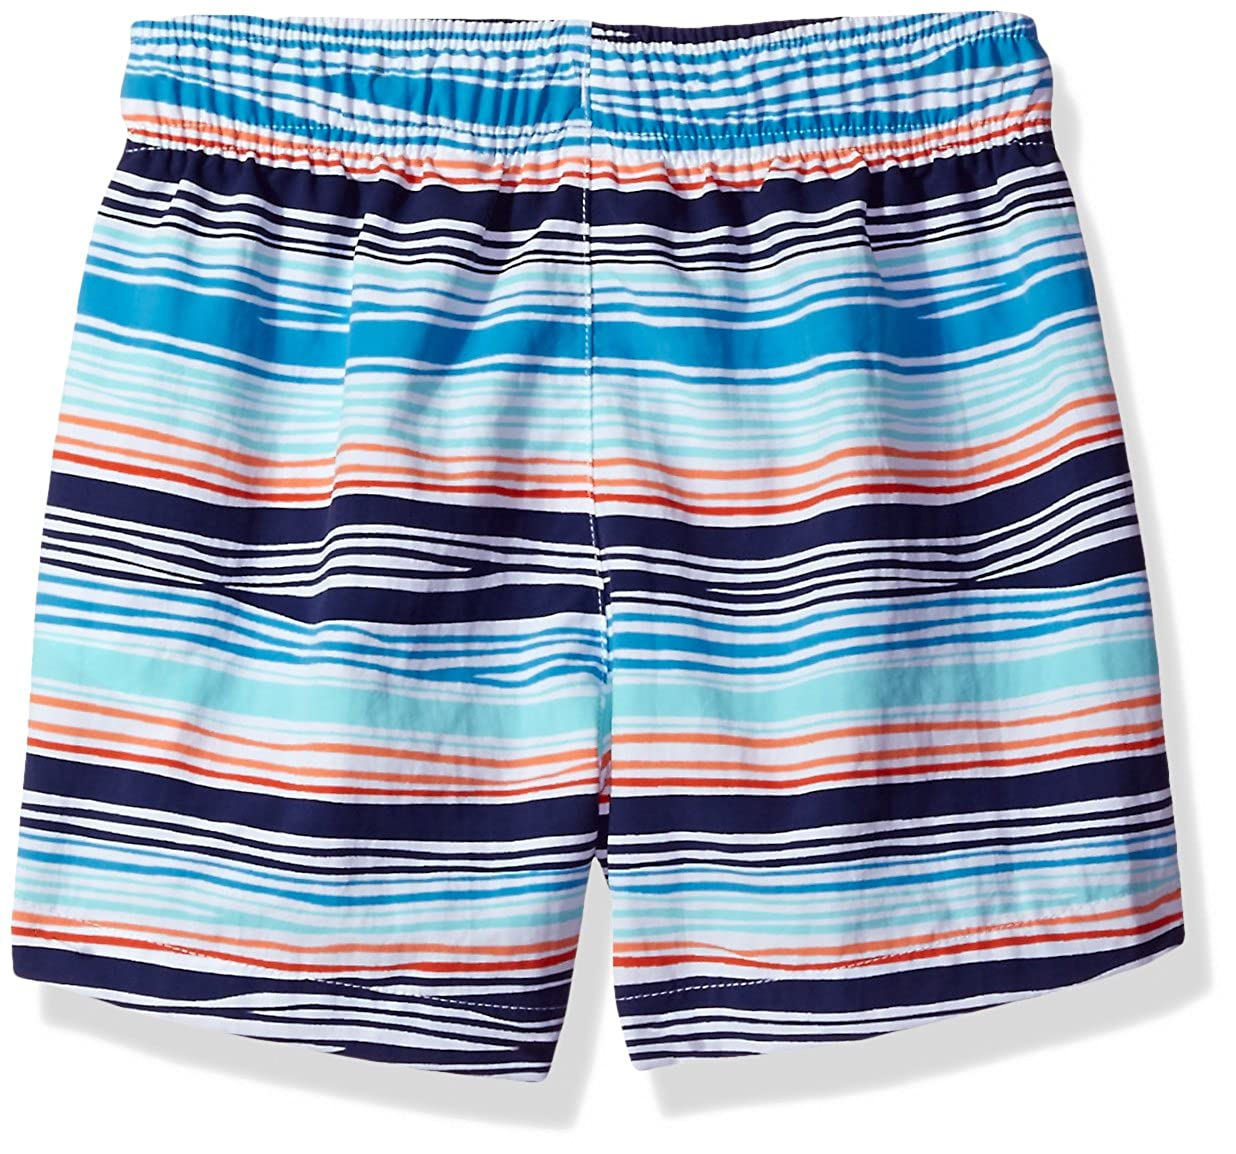 e9d11afee483 Lacoste Little Boy s Irregular Stripe Swim Suit  Amazon.in  Clothing    Accessories